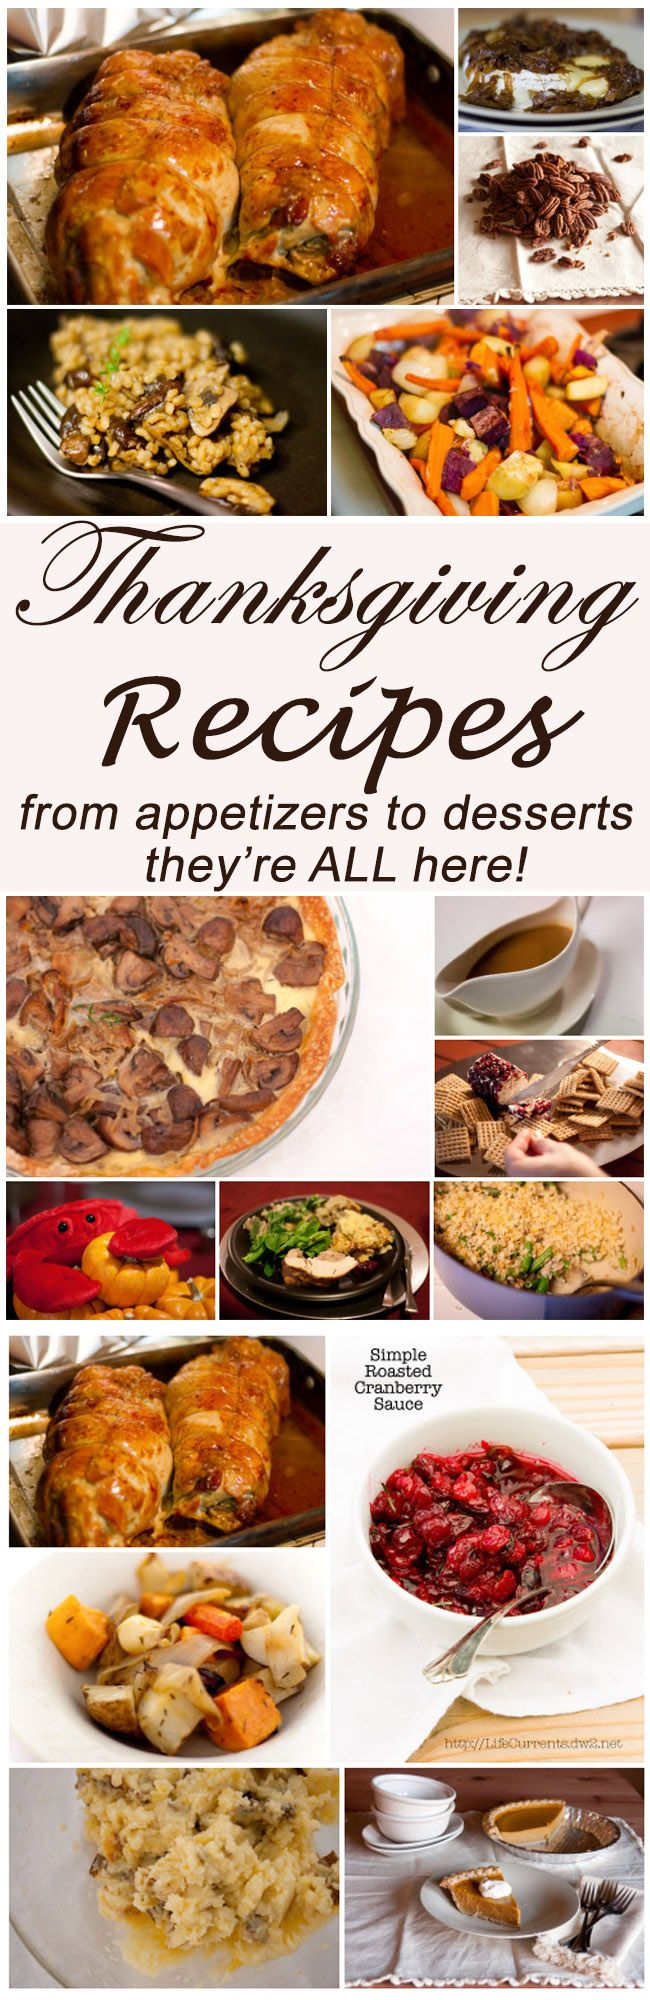 Thanksgiving dishes: from appetizers, to salads, soups, breads, sides, main, and desserts, it's all here. Even some full menus!